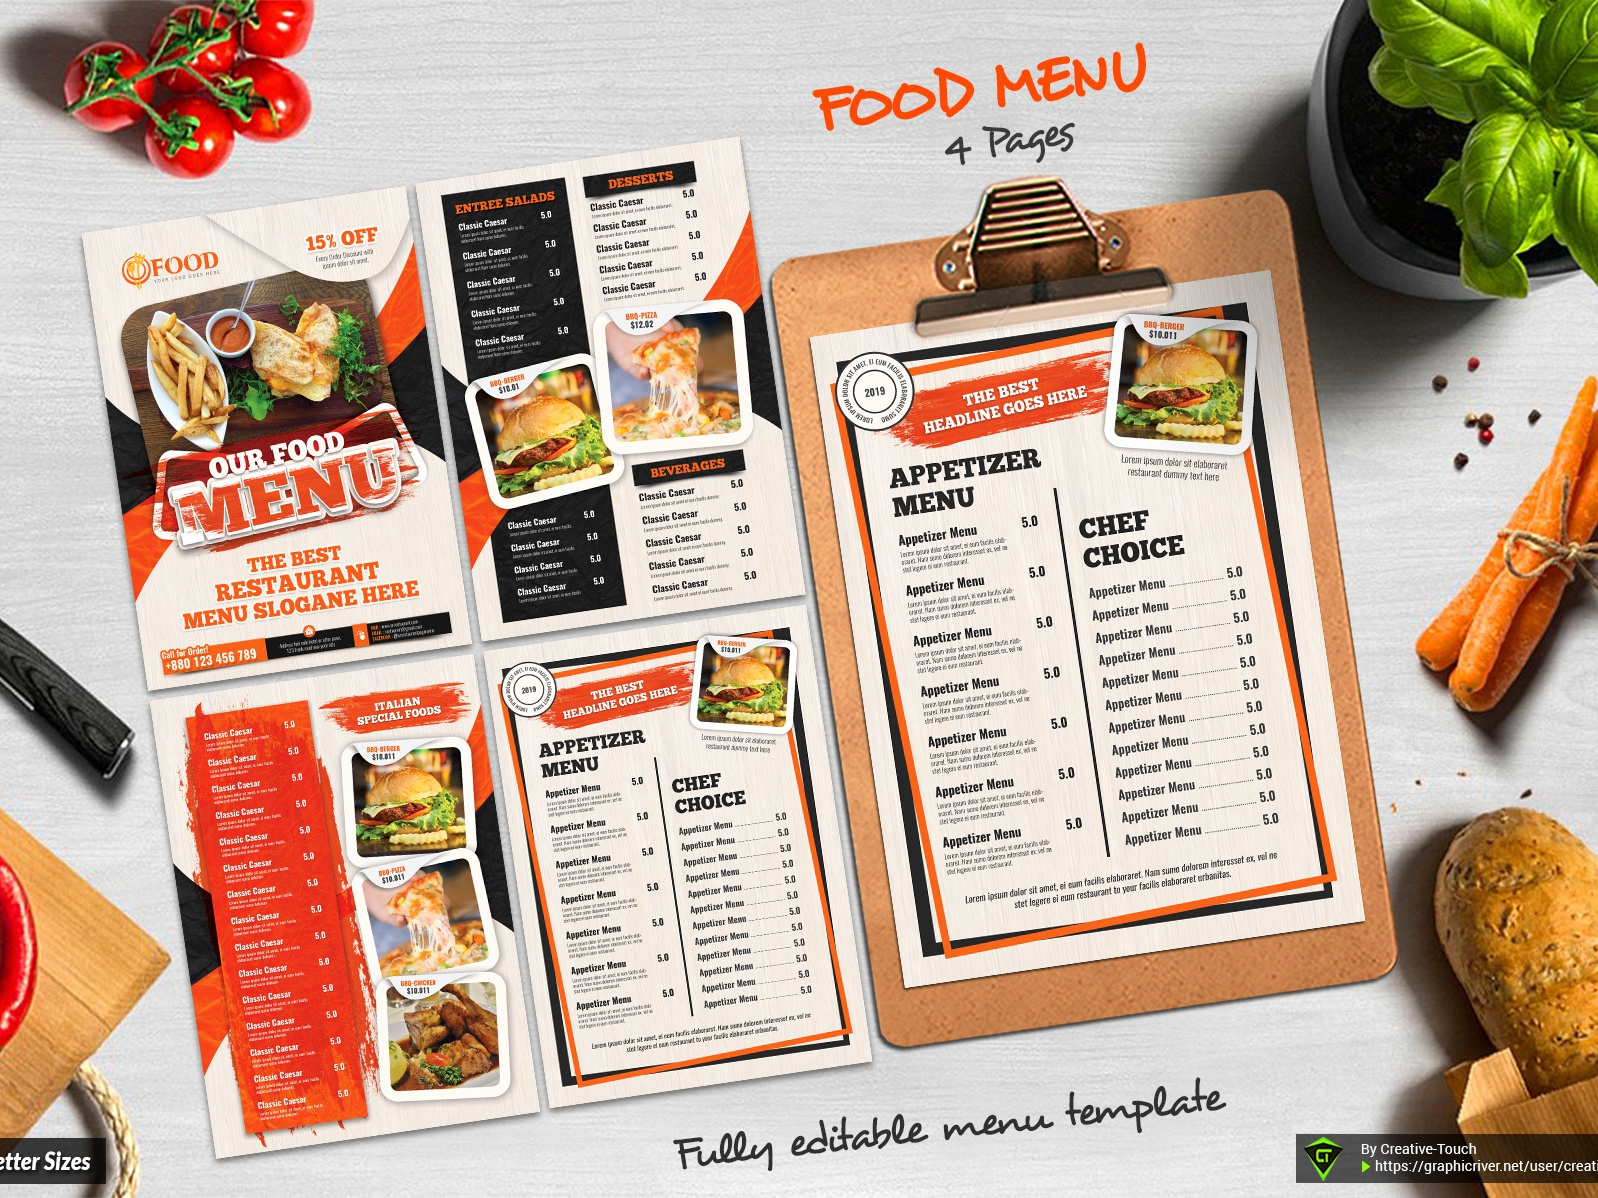 Food Menu Template By Creative Touch Dribbble Dribbble